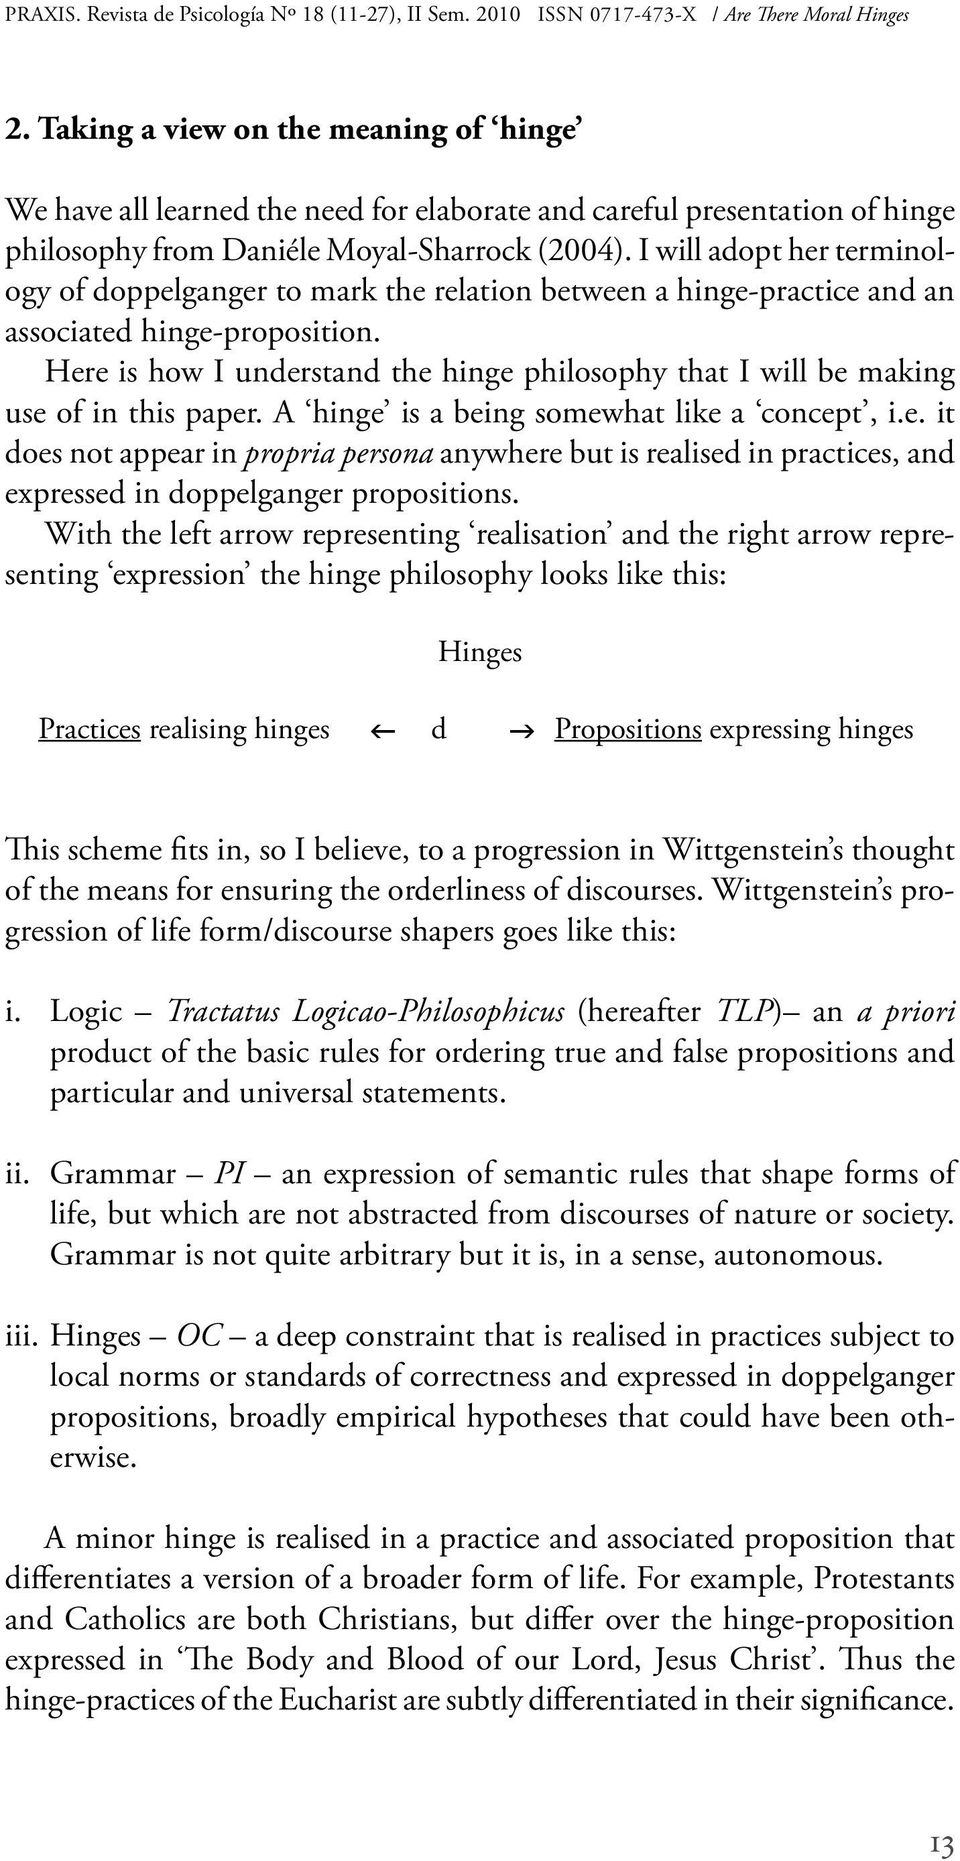 Here is how I understand the hinge philosophy that I will be making use of in this paper. A hinge is a being somewhat like a concept, i.e. it does not appear in propria persona anywhere but is realised in practices, and expressed in doppelganger propositions.